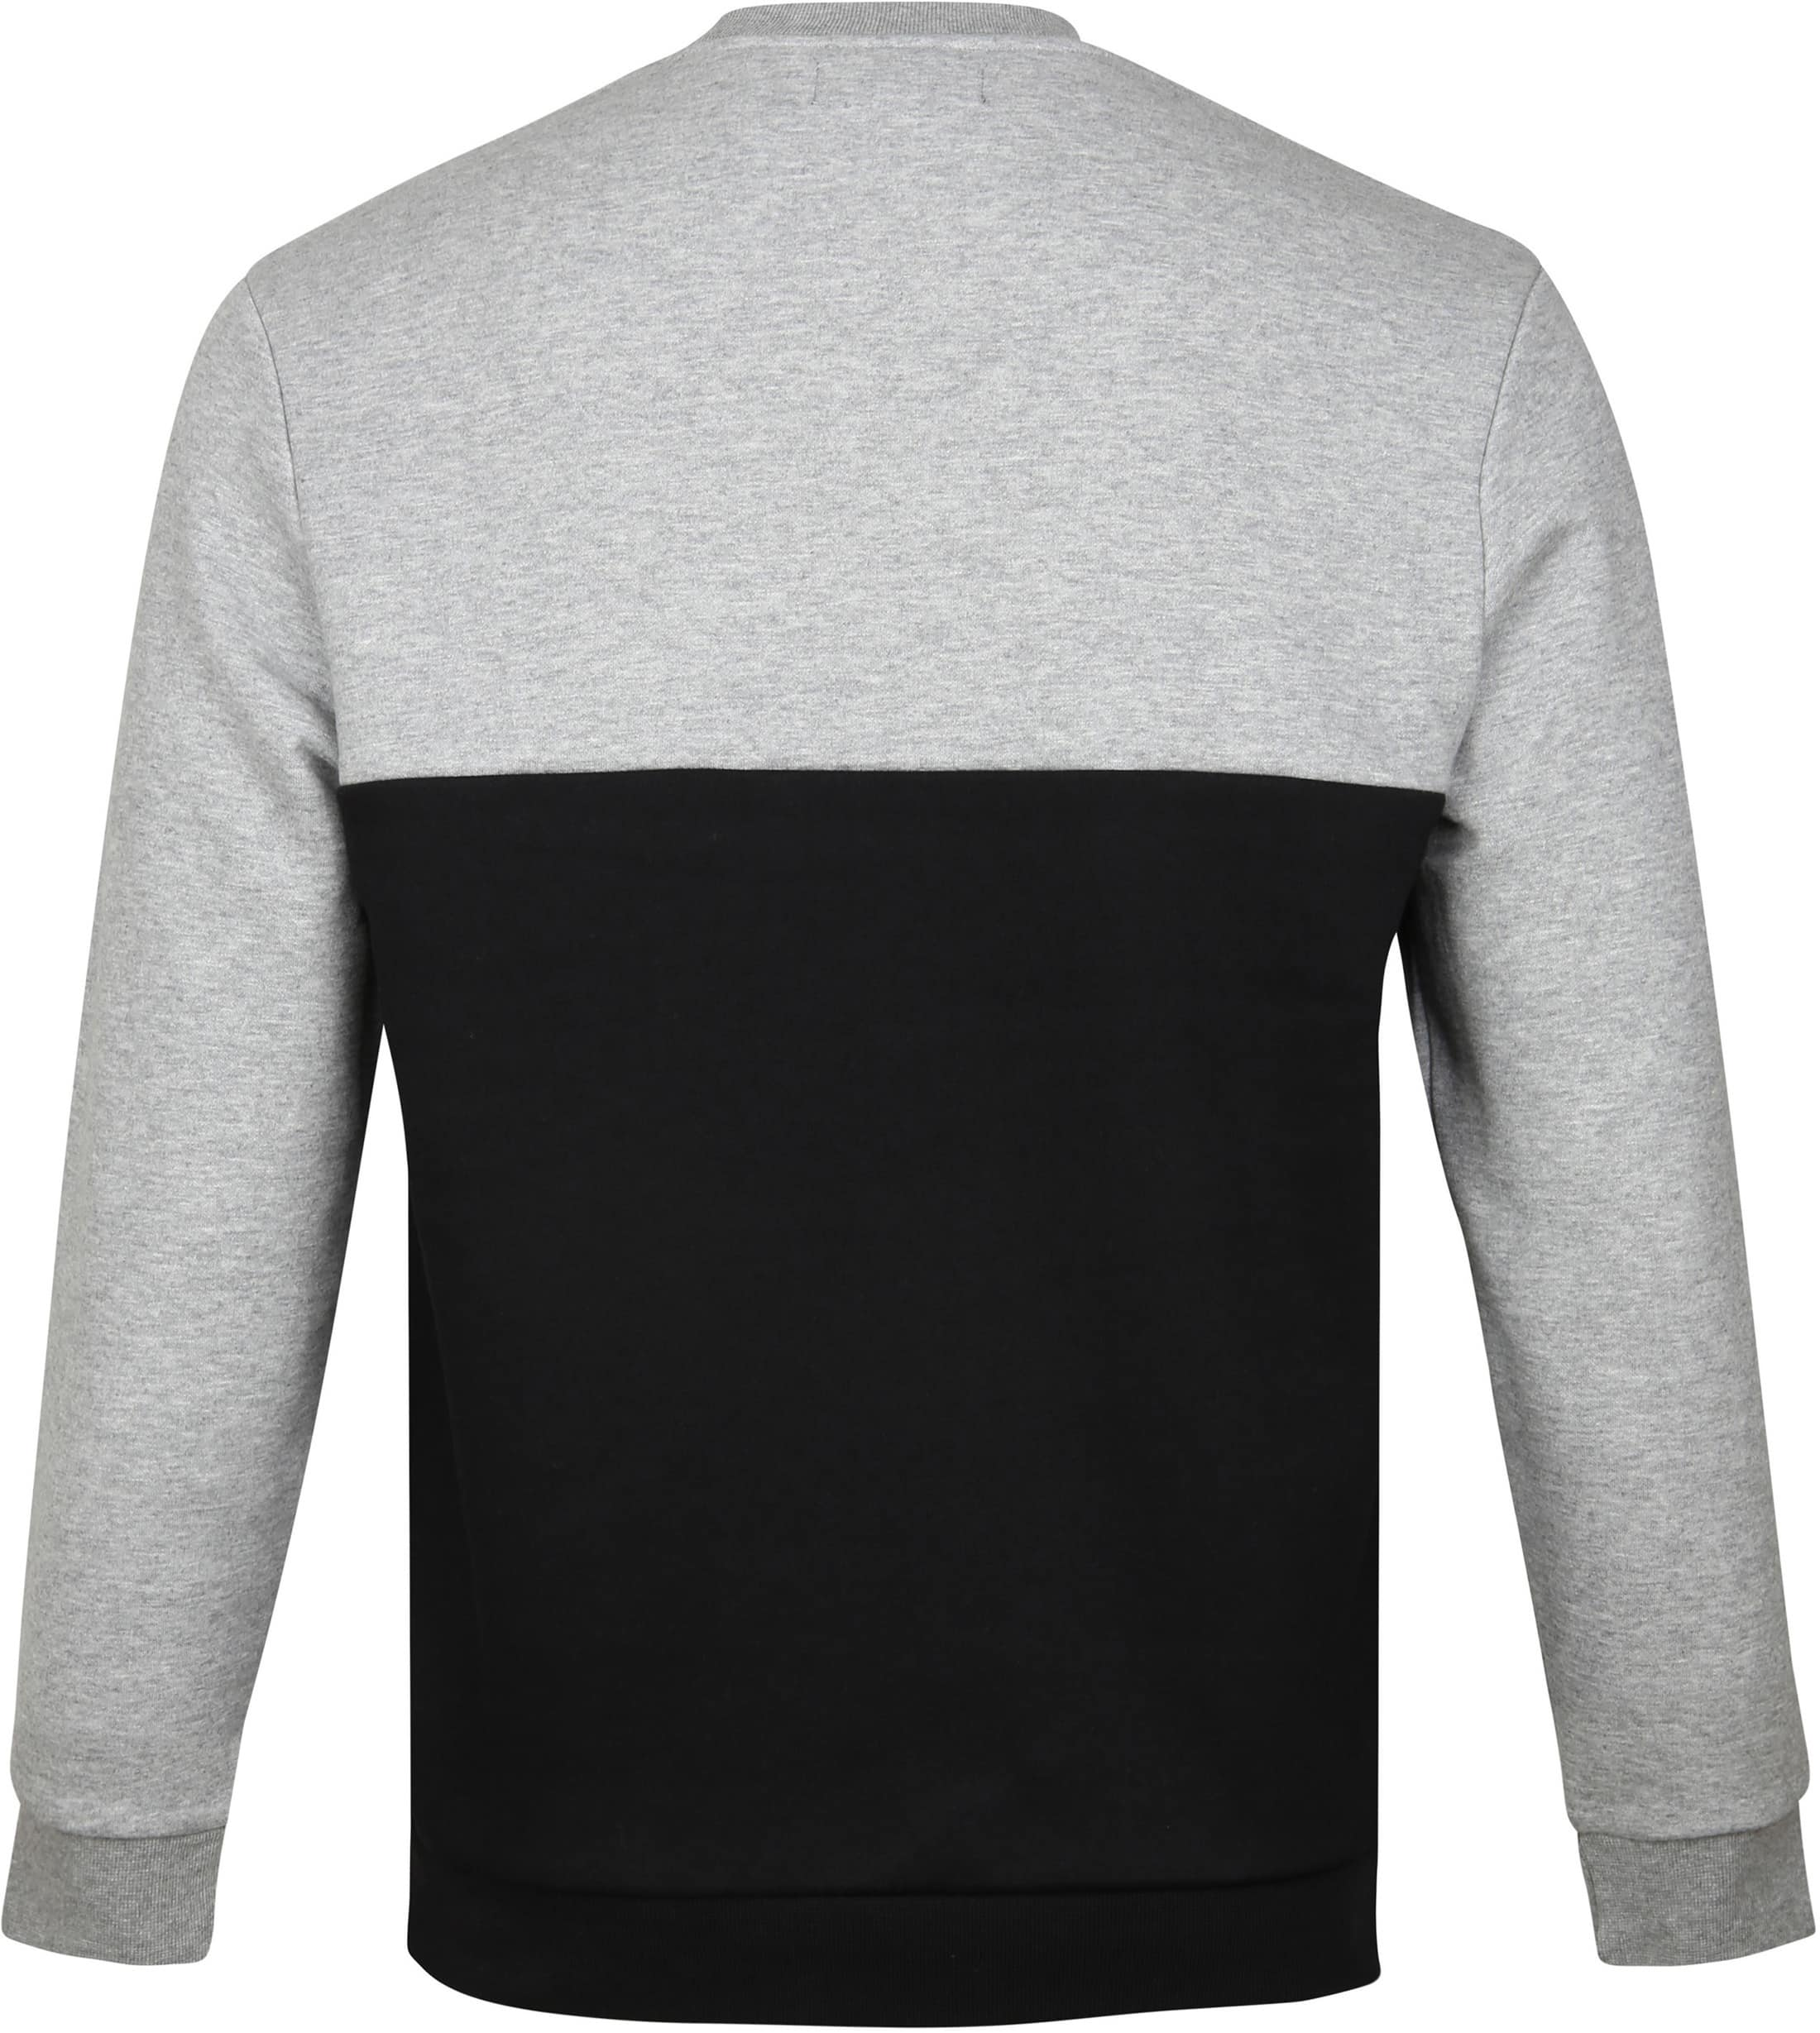 Fred Perry Sweater Grey Black Logo foto 2